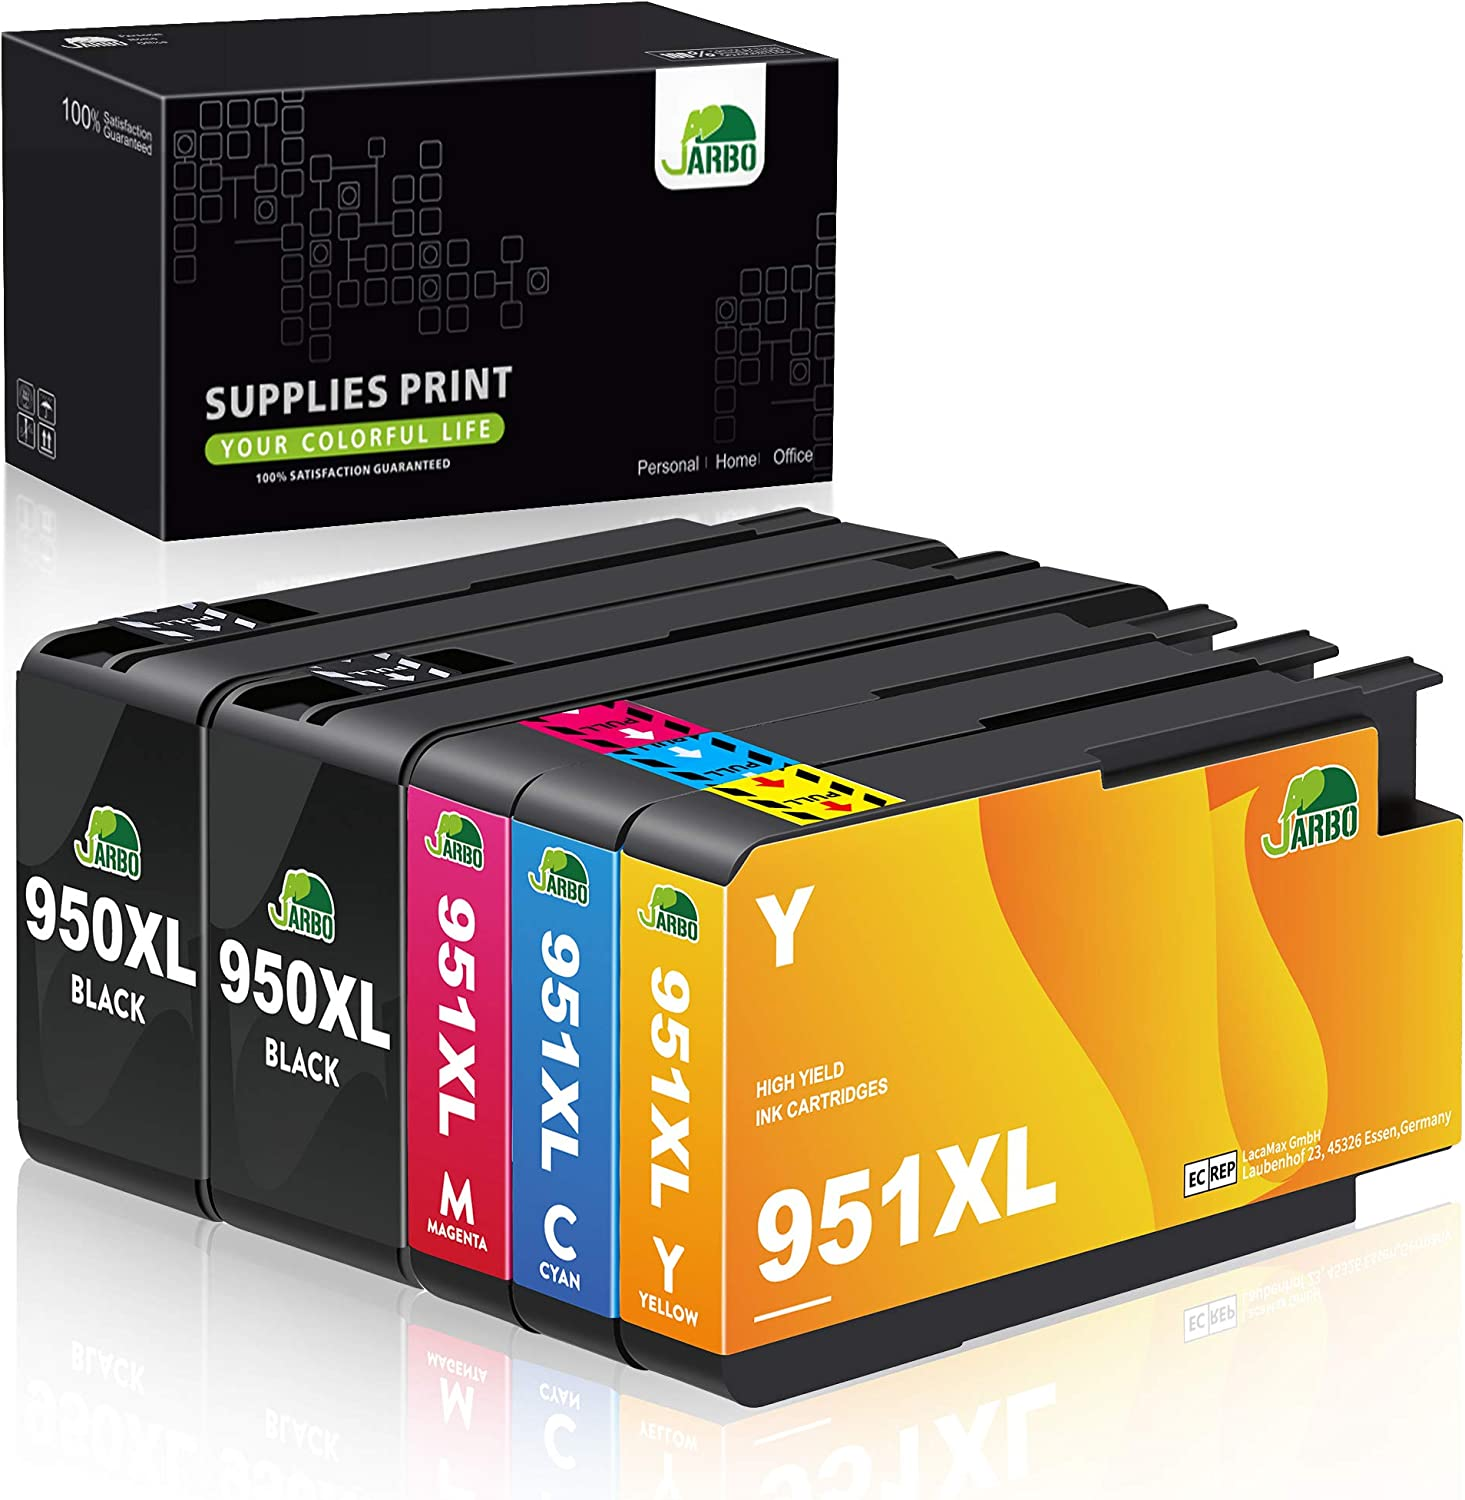 C//M//Y, 3 pk FUZOO 951XL Compatible Ink Cartridges Replacement for HP 951 XL Work with Officejet Pro 8600 8610 8620 8630 8640 8660 8100 8615 8625 276DW 251DW 271DW Printer High Yield